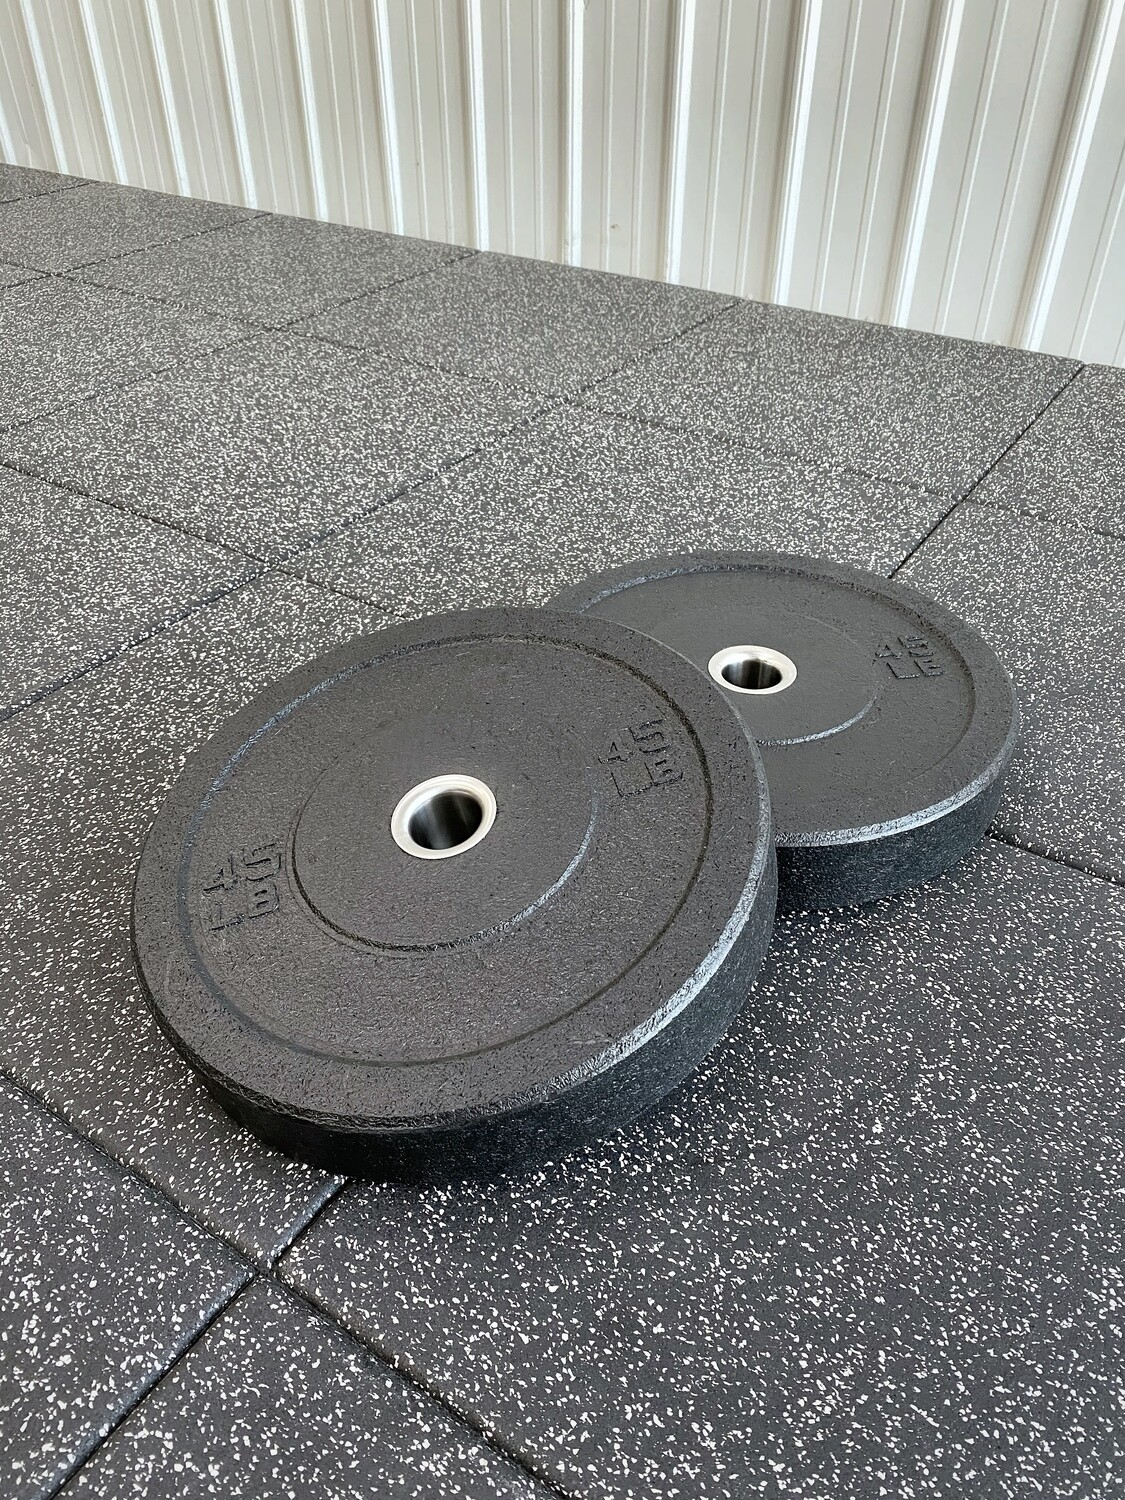 35LB High Impact Bumper Plates (Pair)